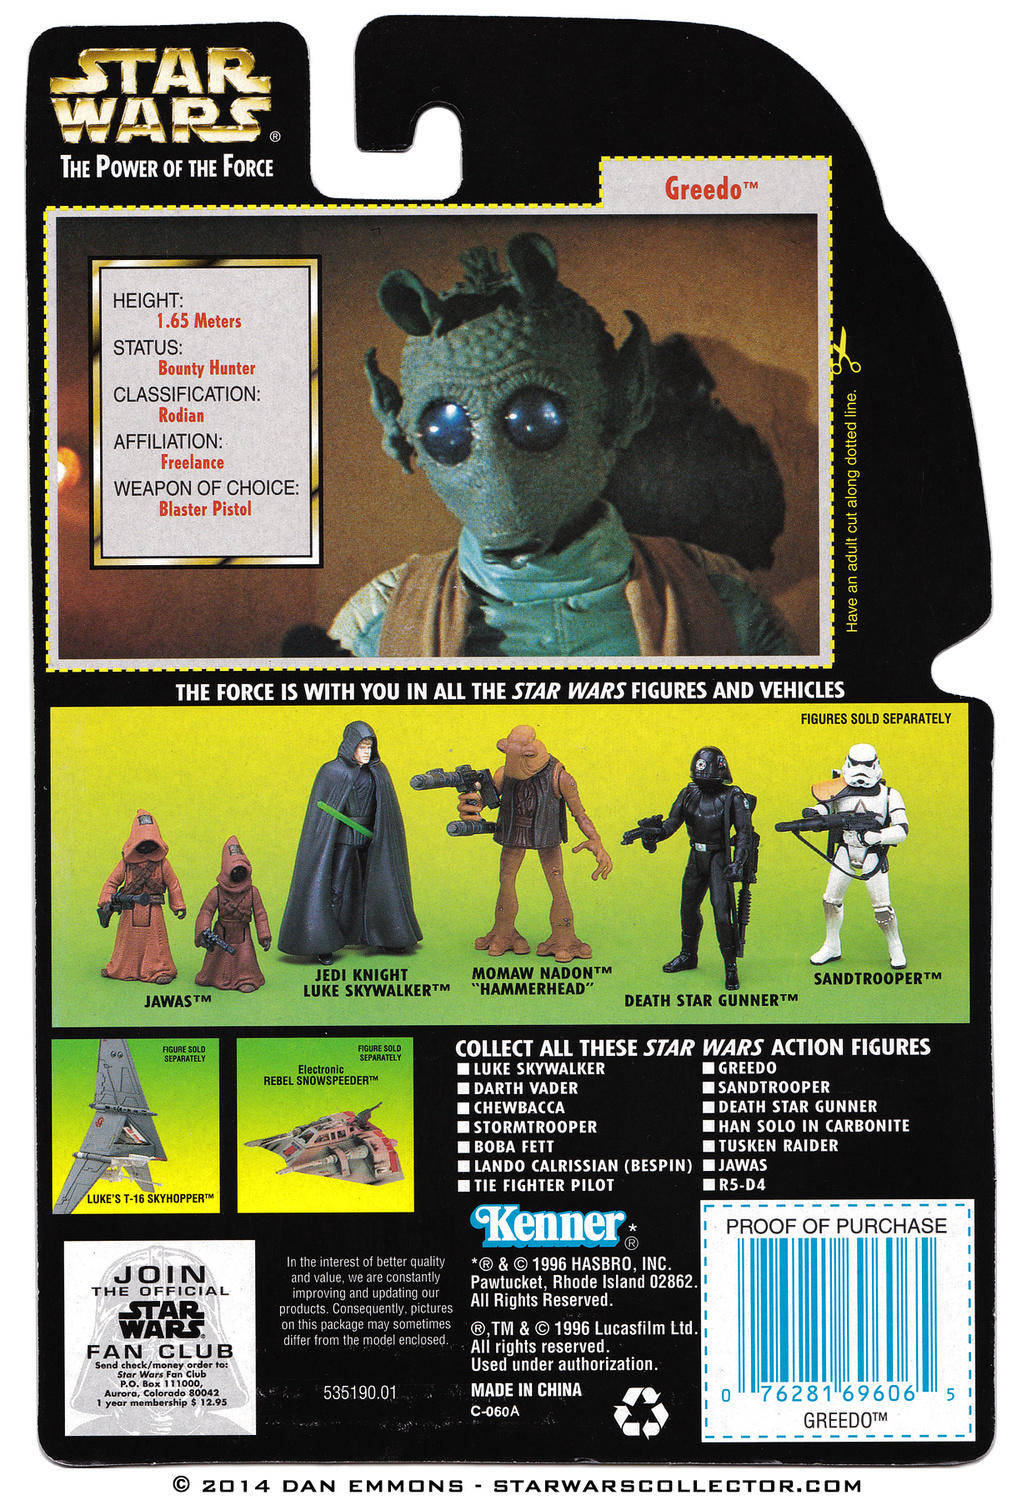 Greedo With Rodian Blaster Rifle Power Of The Force - 25 2 lego star wars minifigures han solo han in carbonite blaster